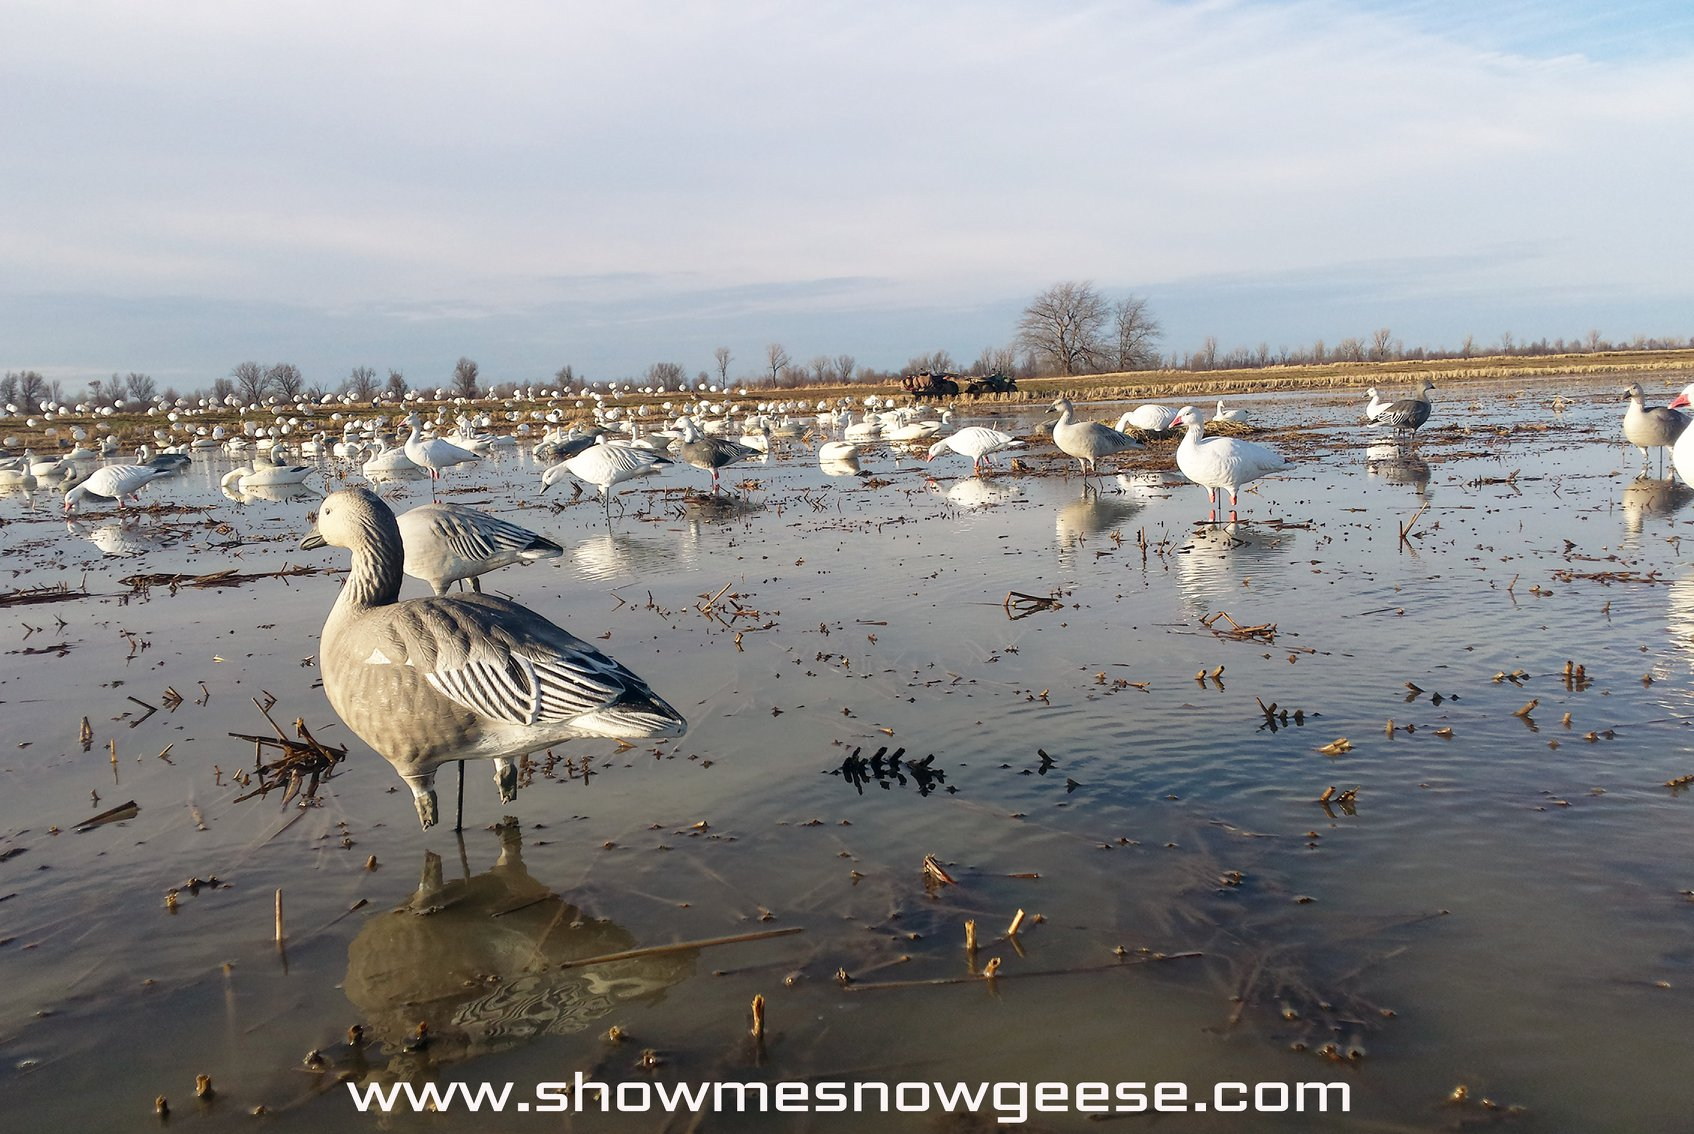 show-me-snow-geese-1562467001606271318